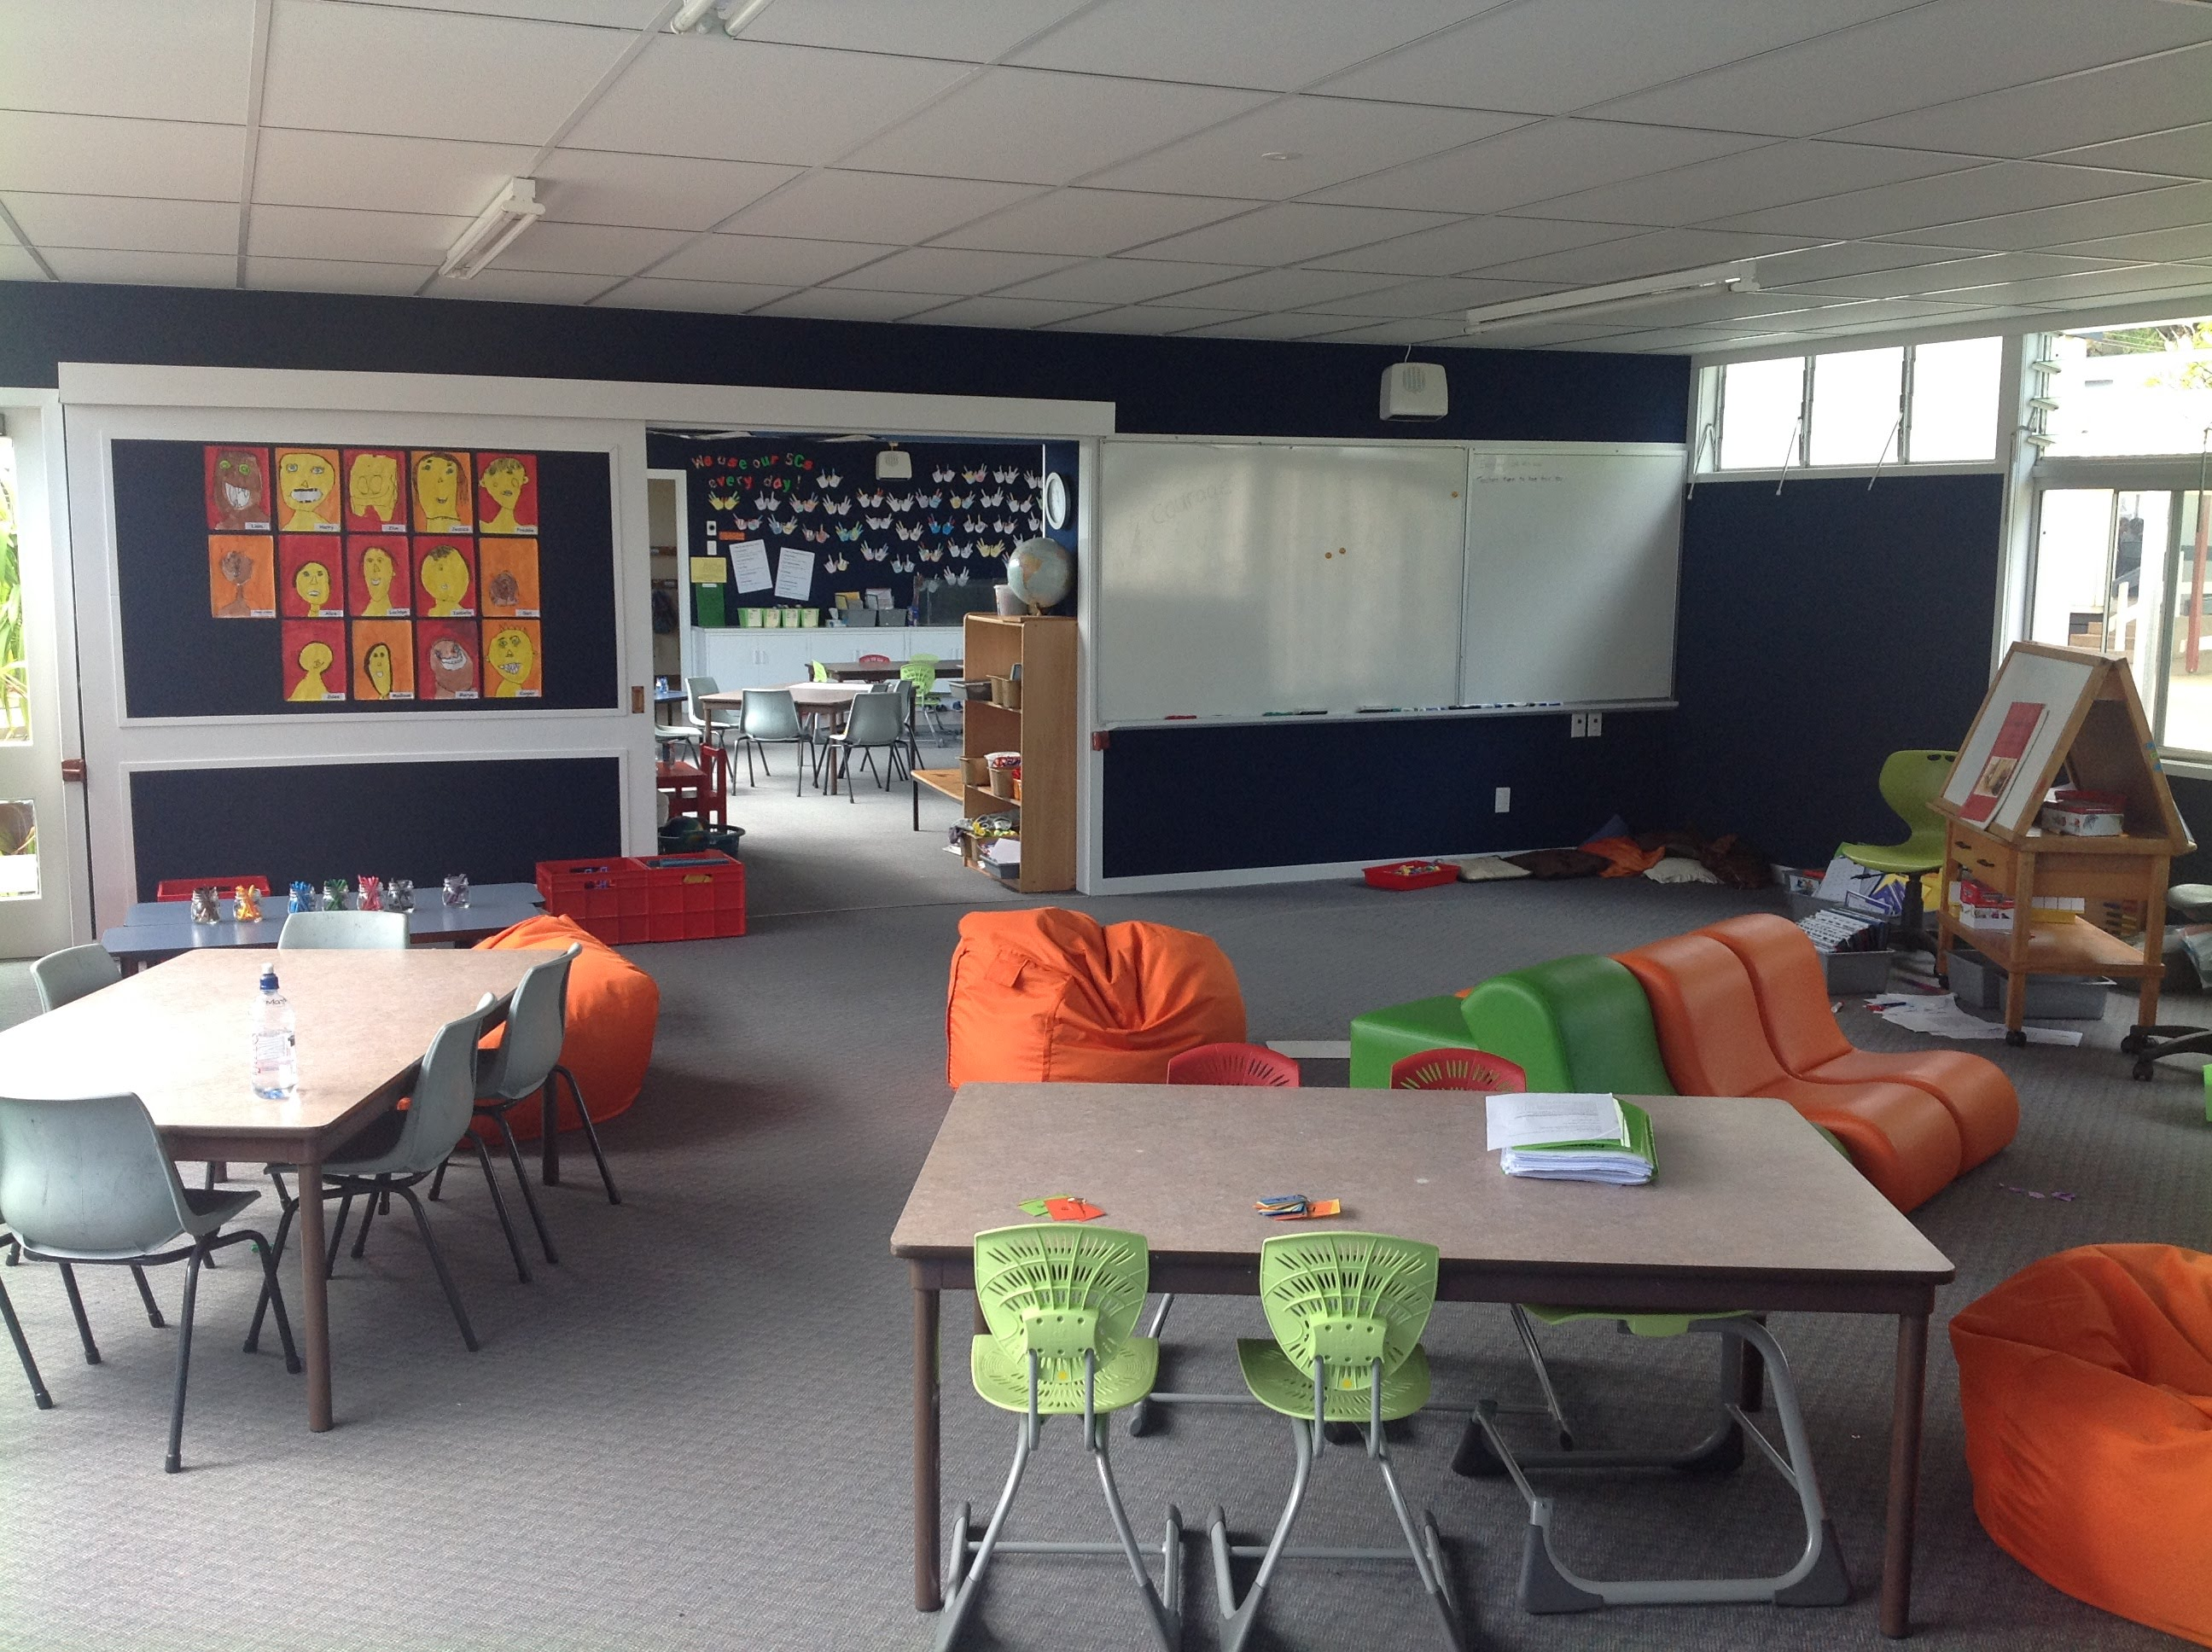 collaborative office collaborative spaces 320. Our Year 5/6 SpacesTried Out Quite A Lot Of Furniture And With The 60 Children It Looked Bit Crowded At Times. However, This Was Adapted During Collaborative Office Spaces 320 S